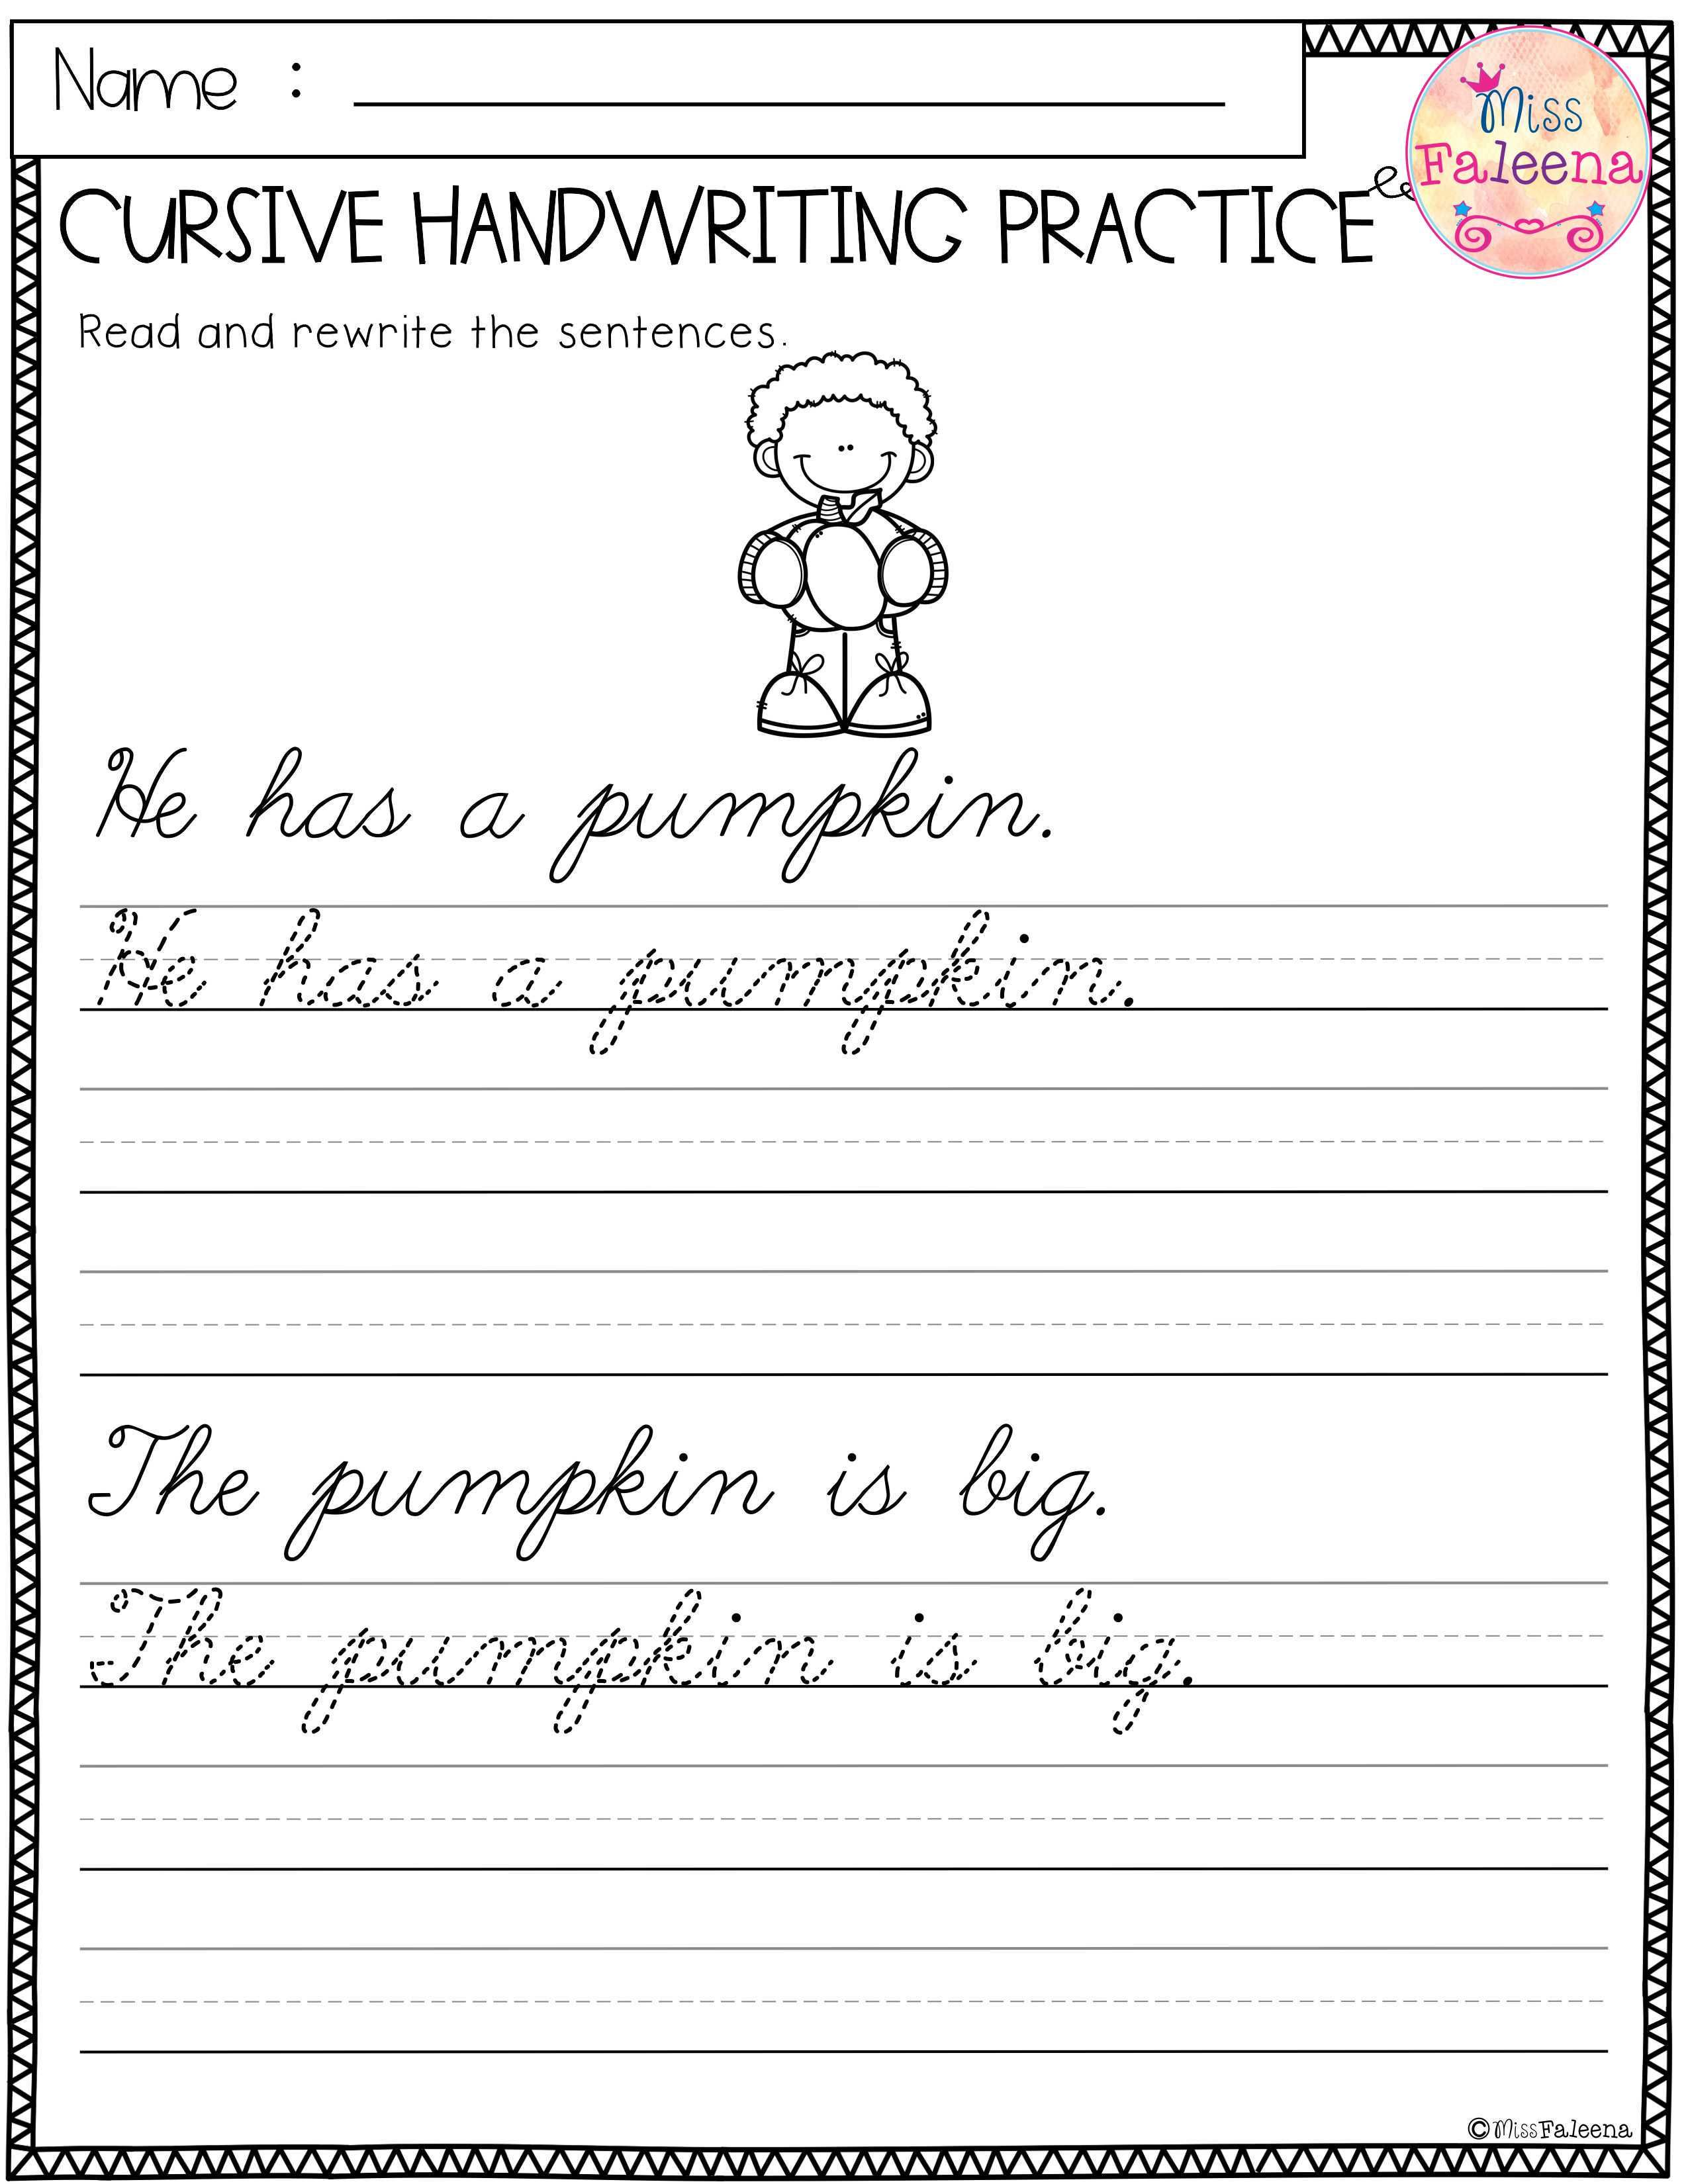 Worksheets Free Cursive Writing Worksheets free cursive handwriting practice miss faleenas store pinterest this product has 5 pages of worksheets will teach children reading